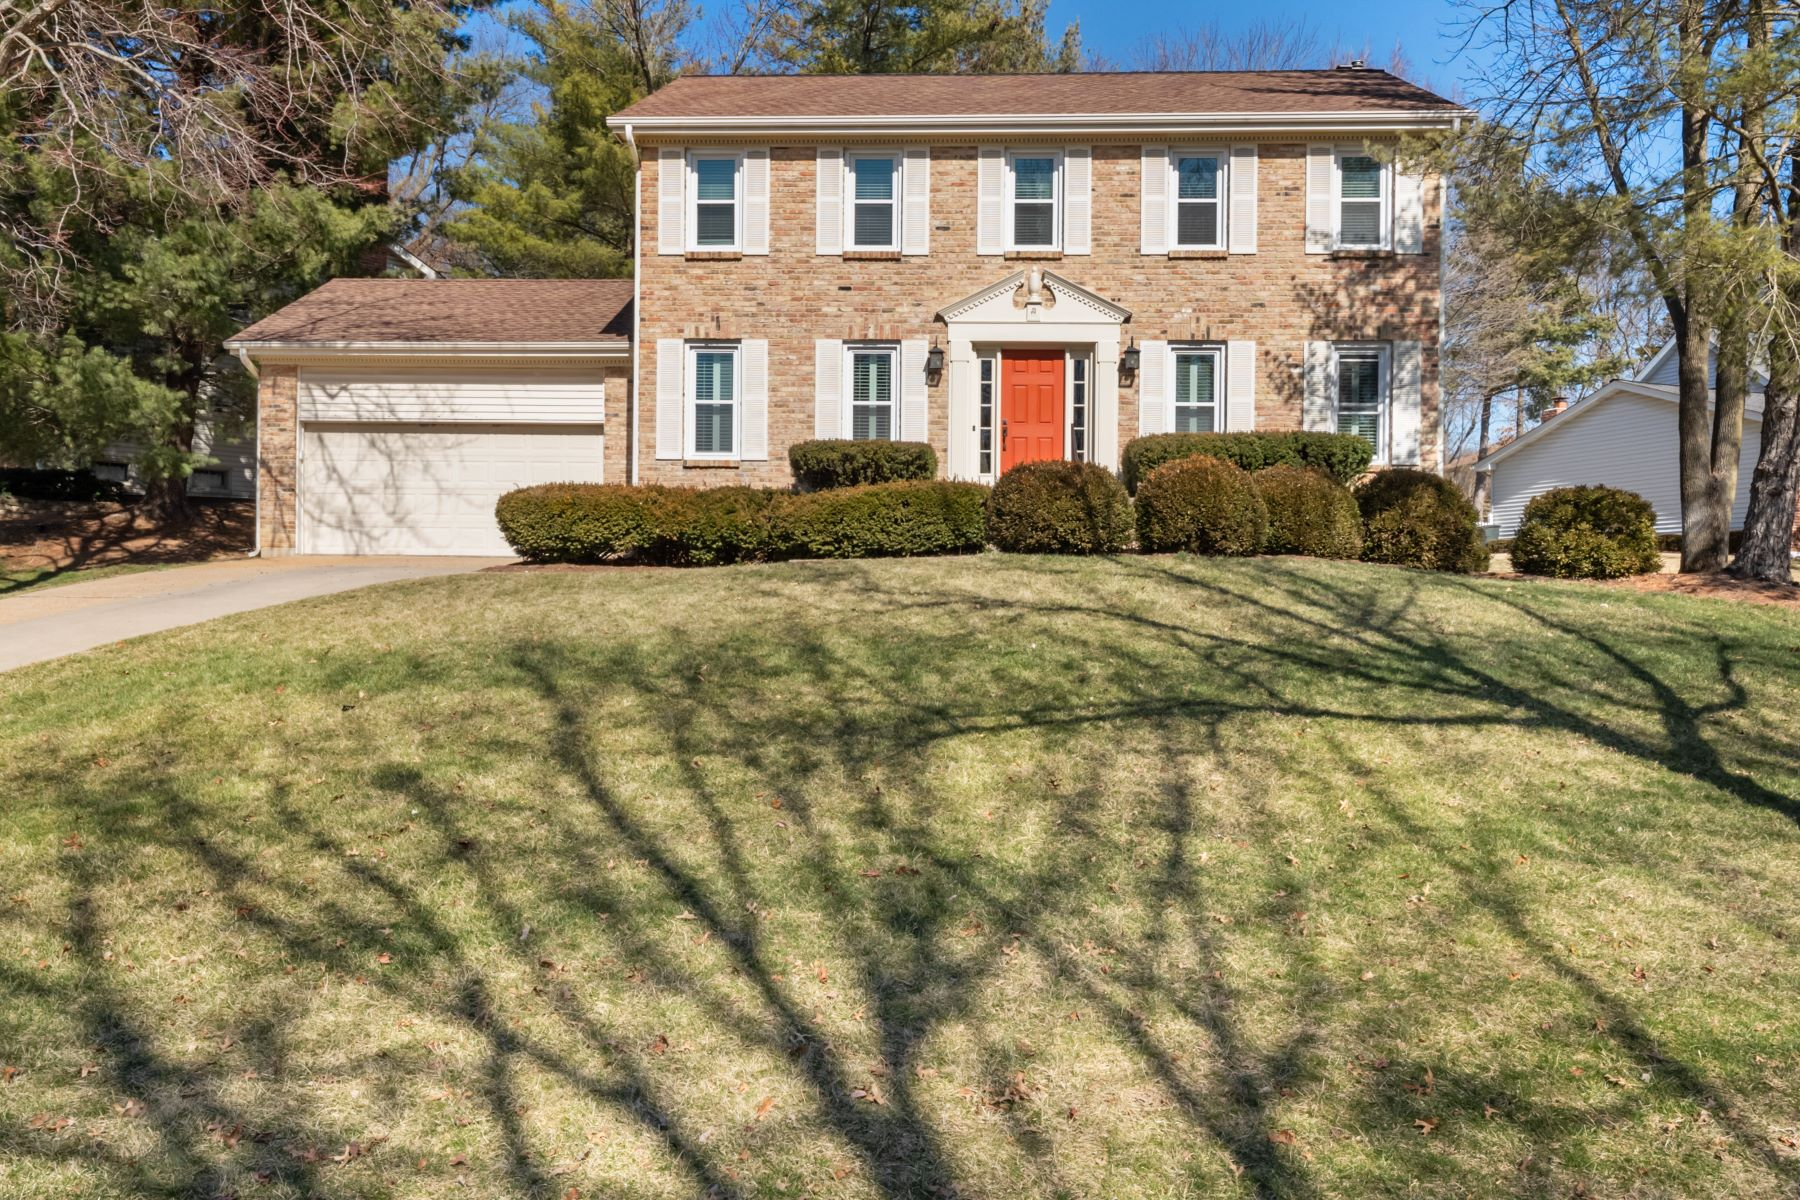 Single Family Homes for Sale at Beautifully updated Colonial in the desirable Spring Valley subdivision! 12201 Sunny Terrace Drive, Des Peres, Missouri 63122 United States